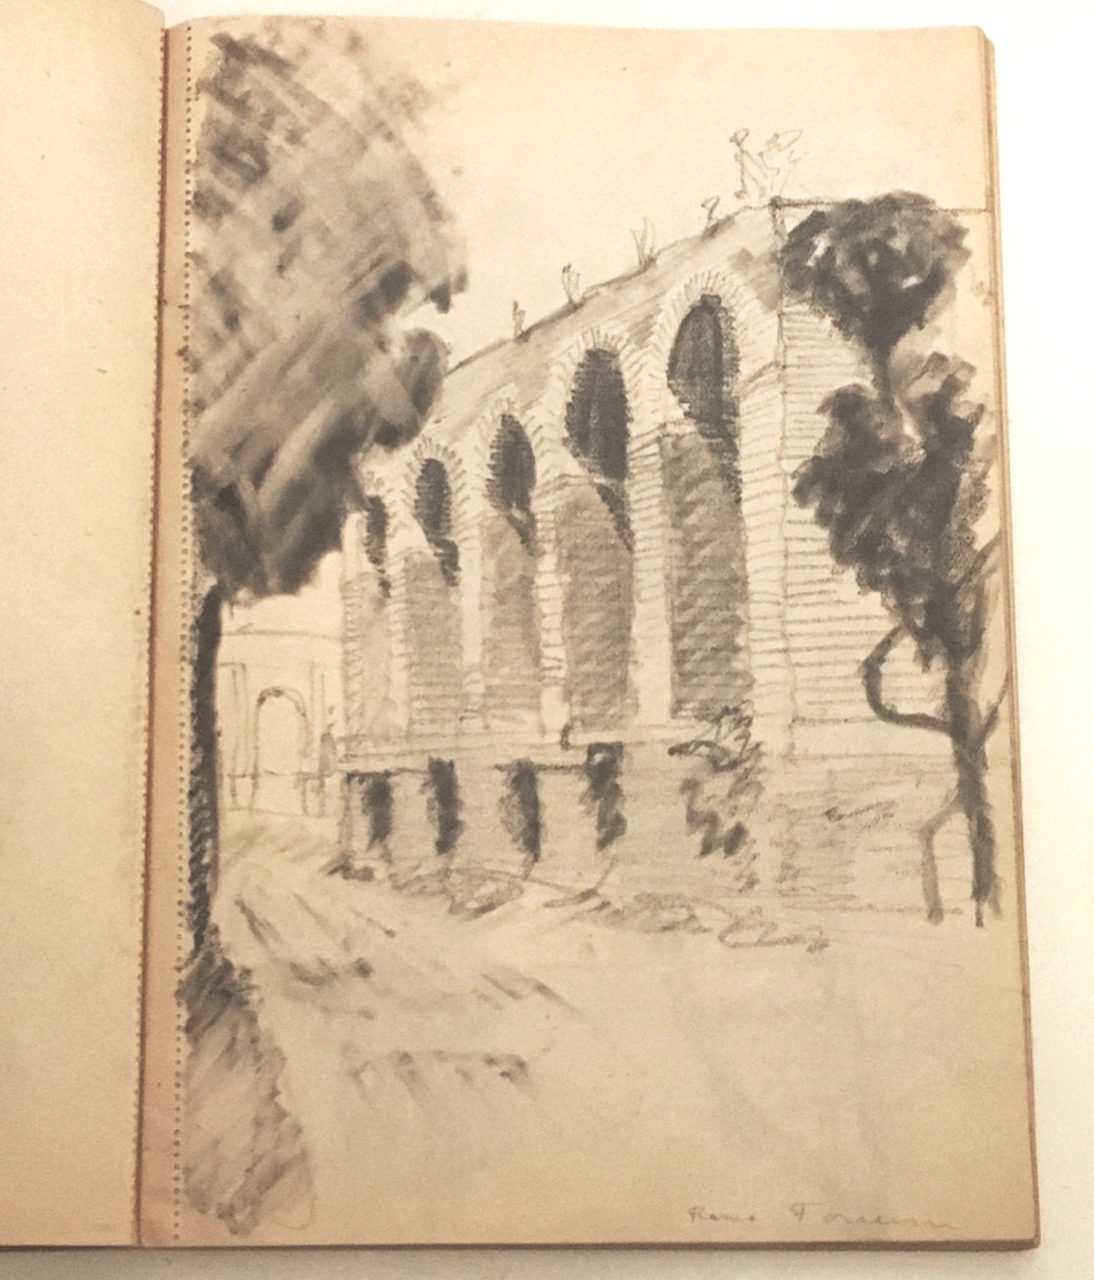 A sketch by Aino Marsio of the Forum in Rome, 1921